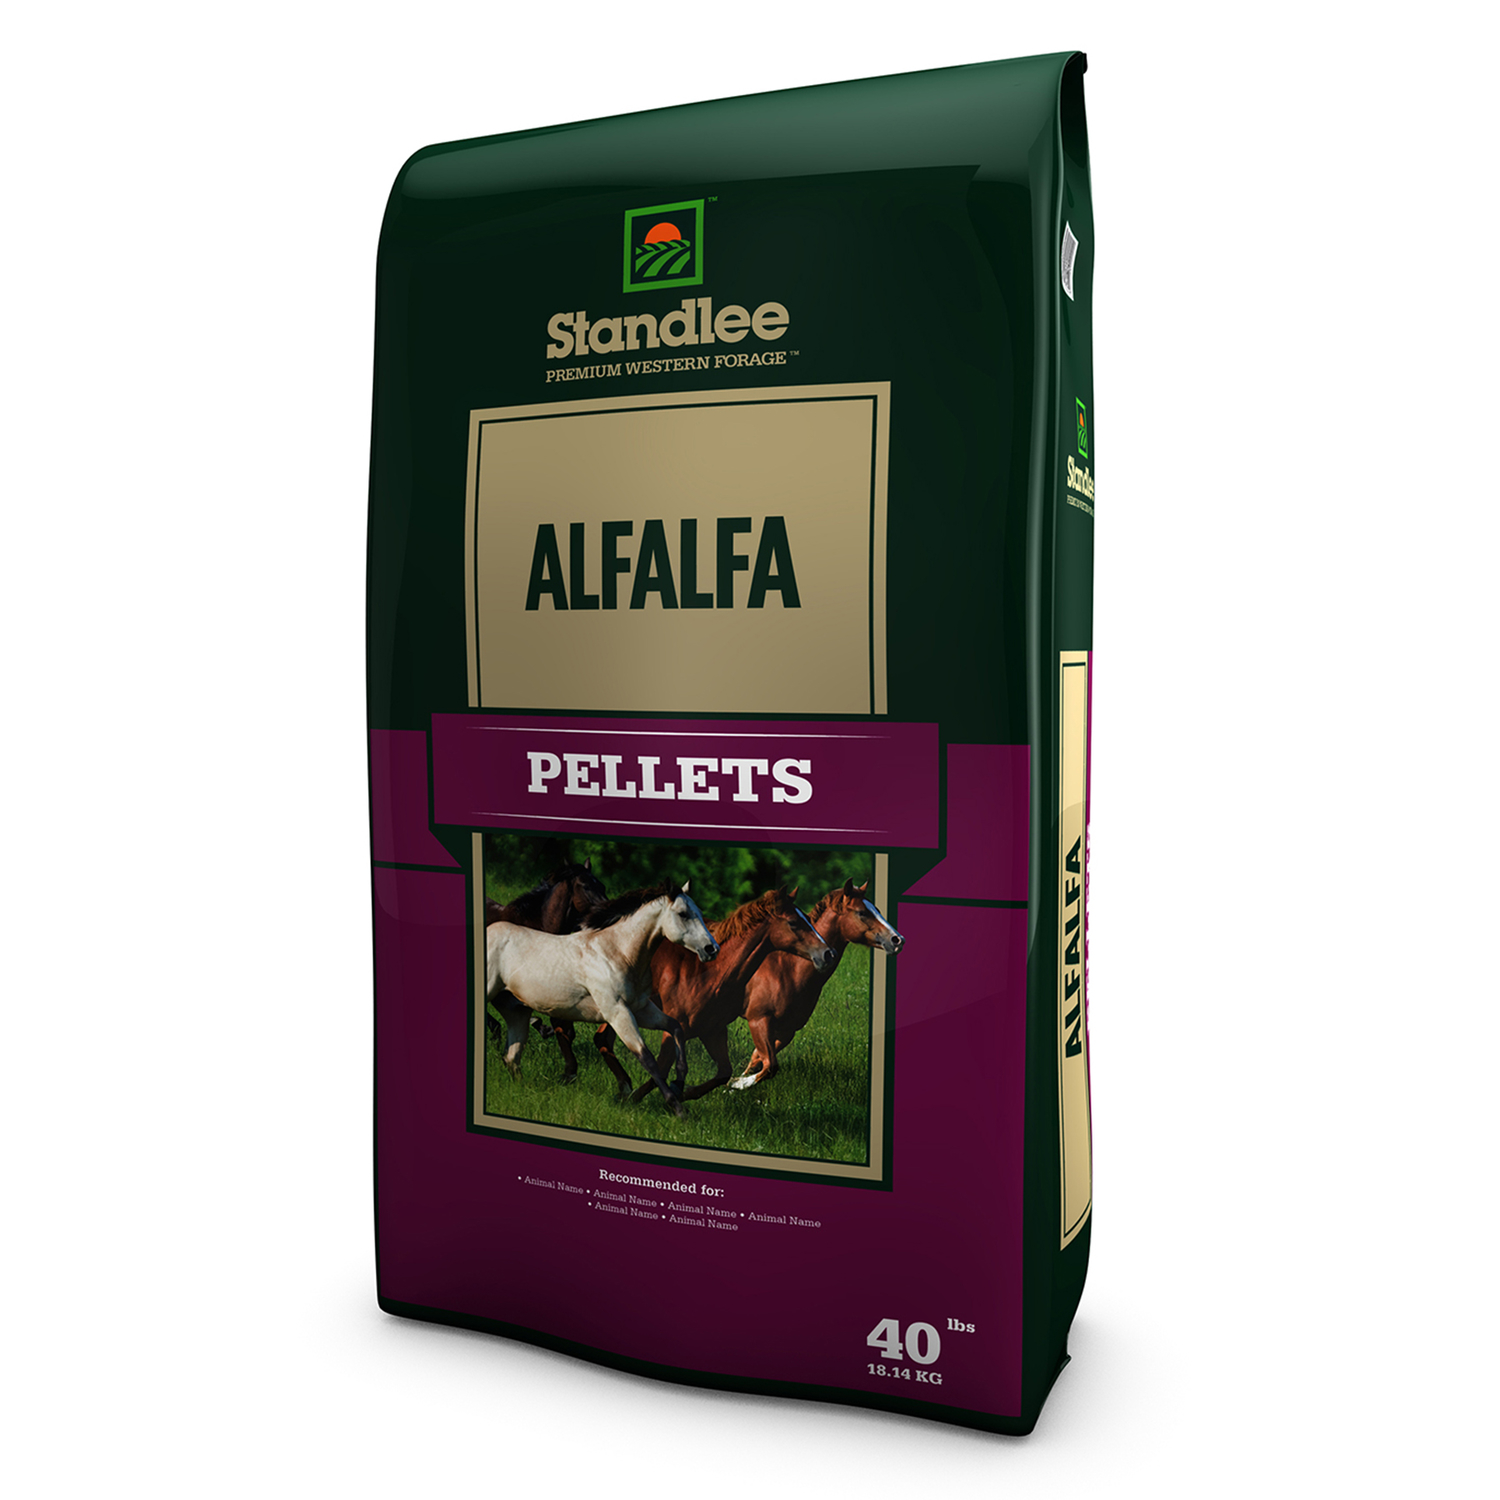 Standlee Premium Western Forage  Alfalfa  Pellets  For Horses 40 lb.